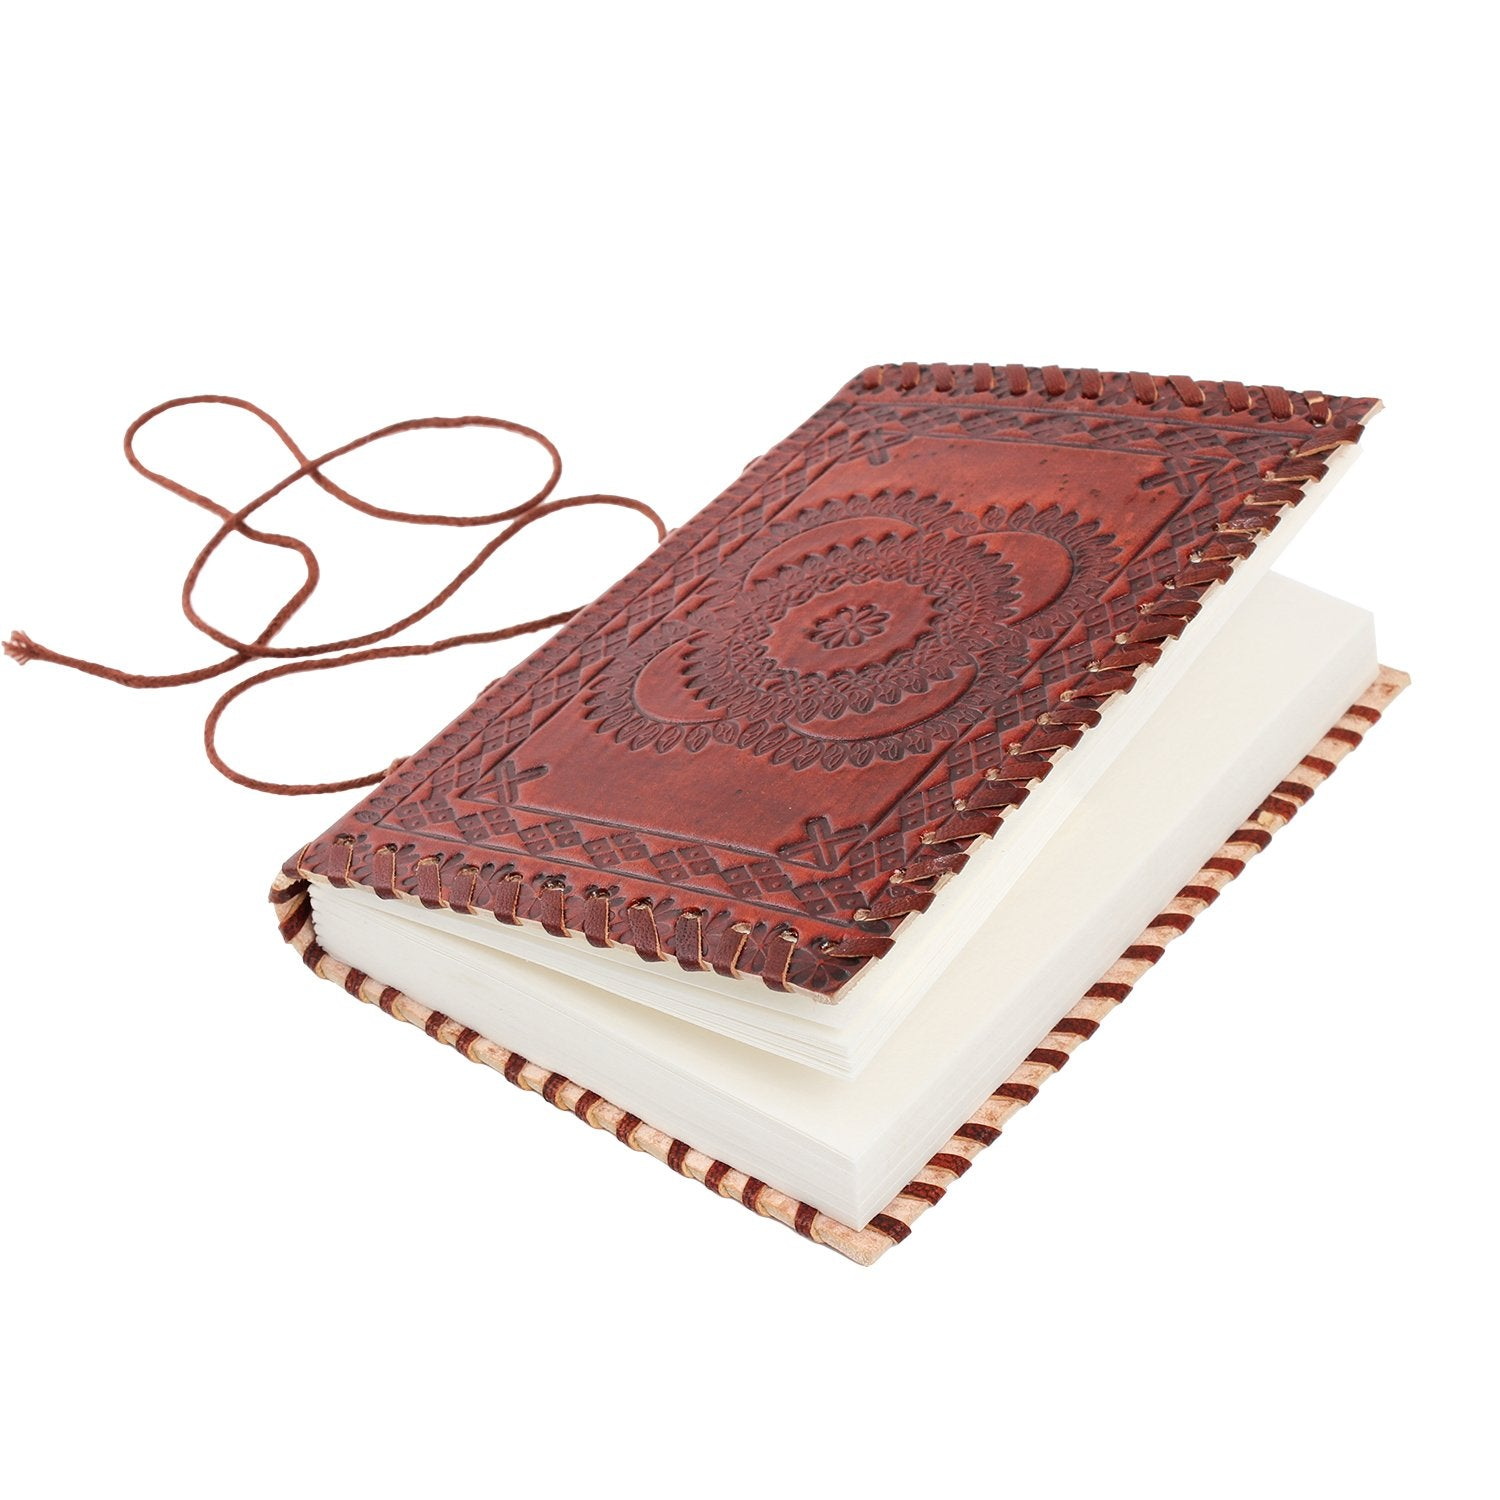 Handmade Leather Floral Embossed Diary with Eco Friendly Pages